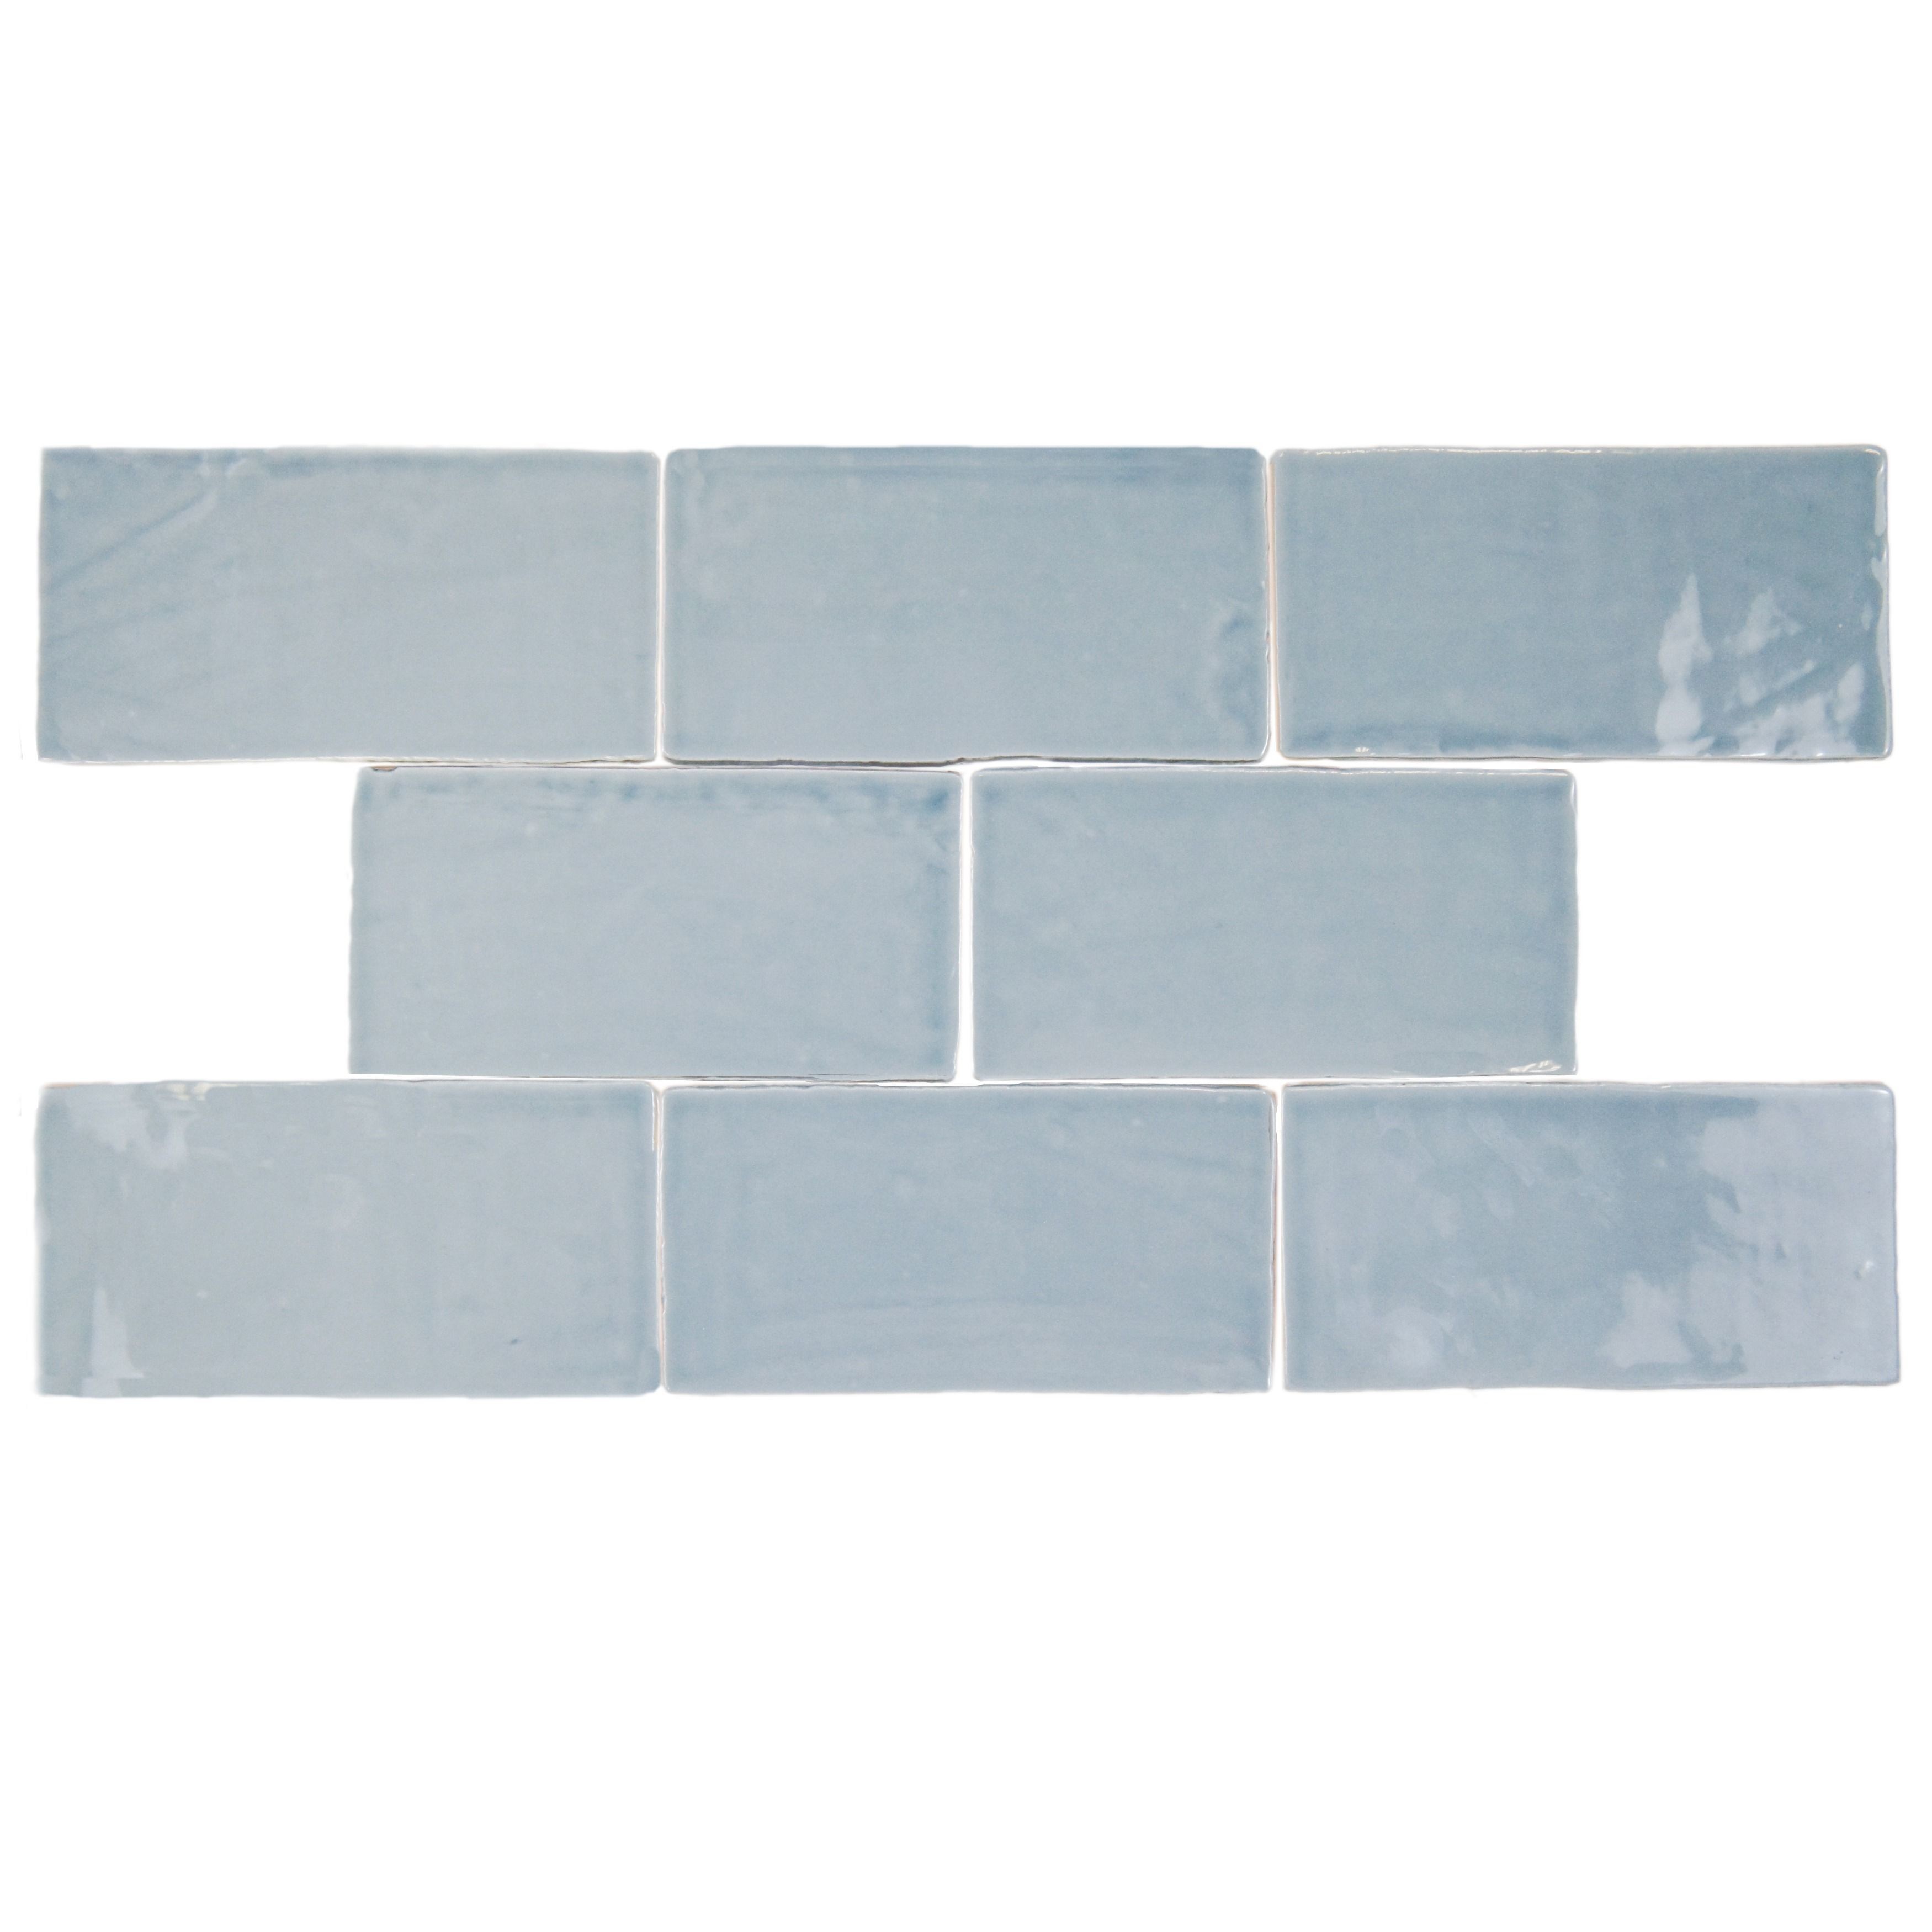 The SomerTile Thames Acqua 3 in. x 6 in. Ceramic Wall Tile has a ...